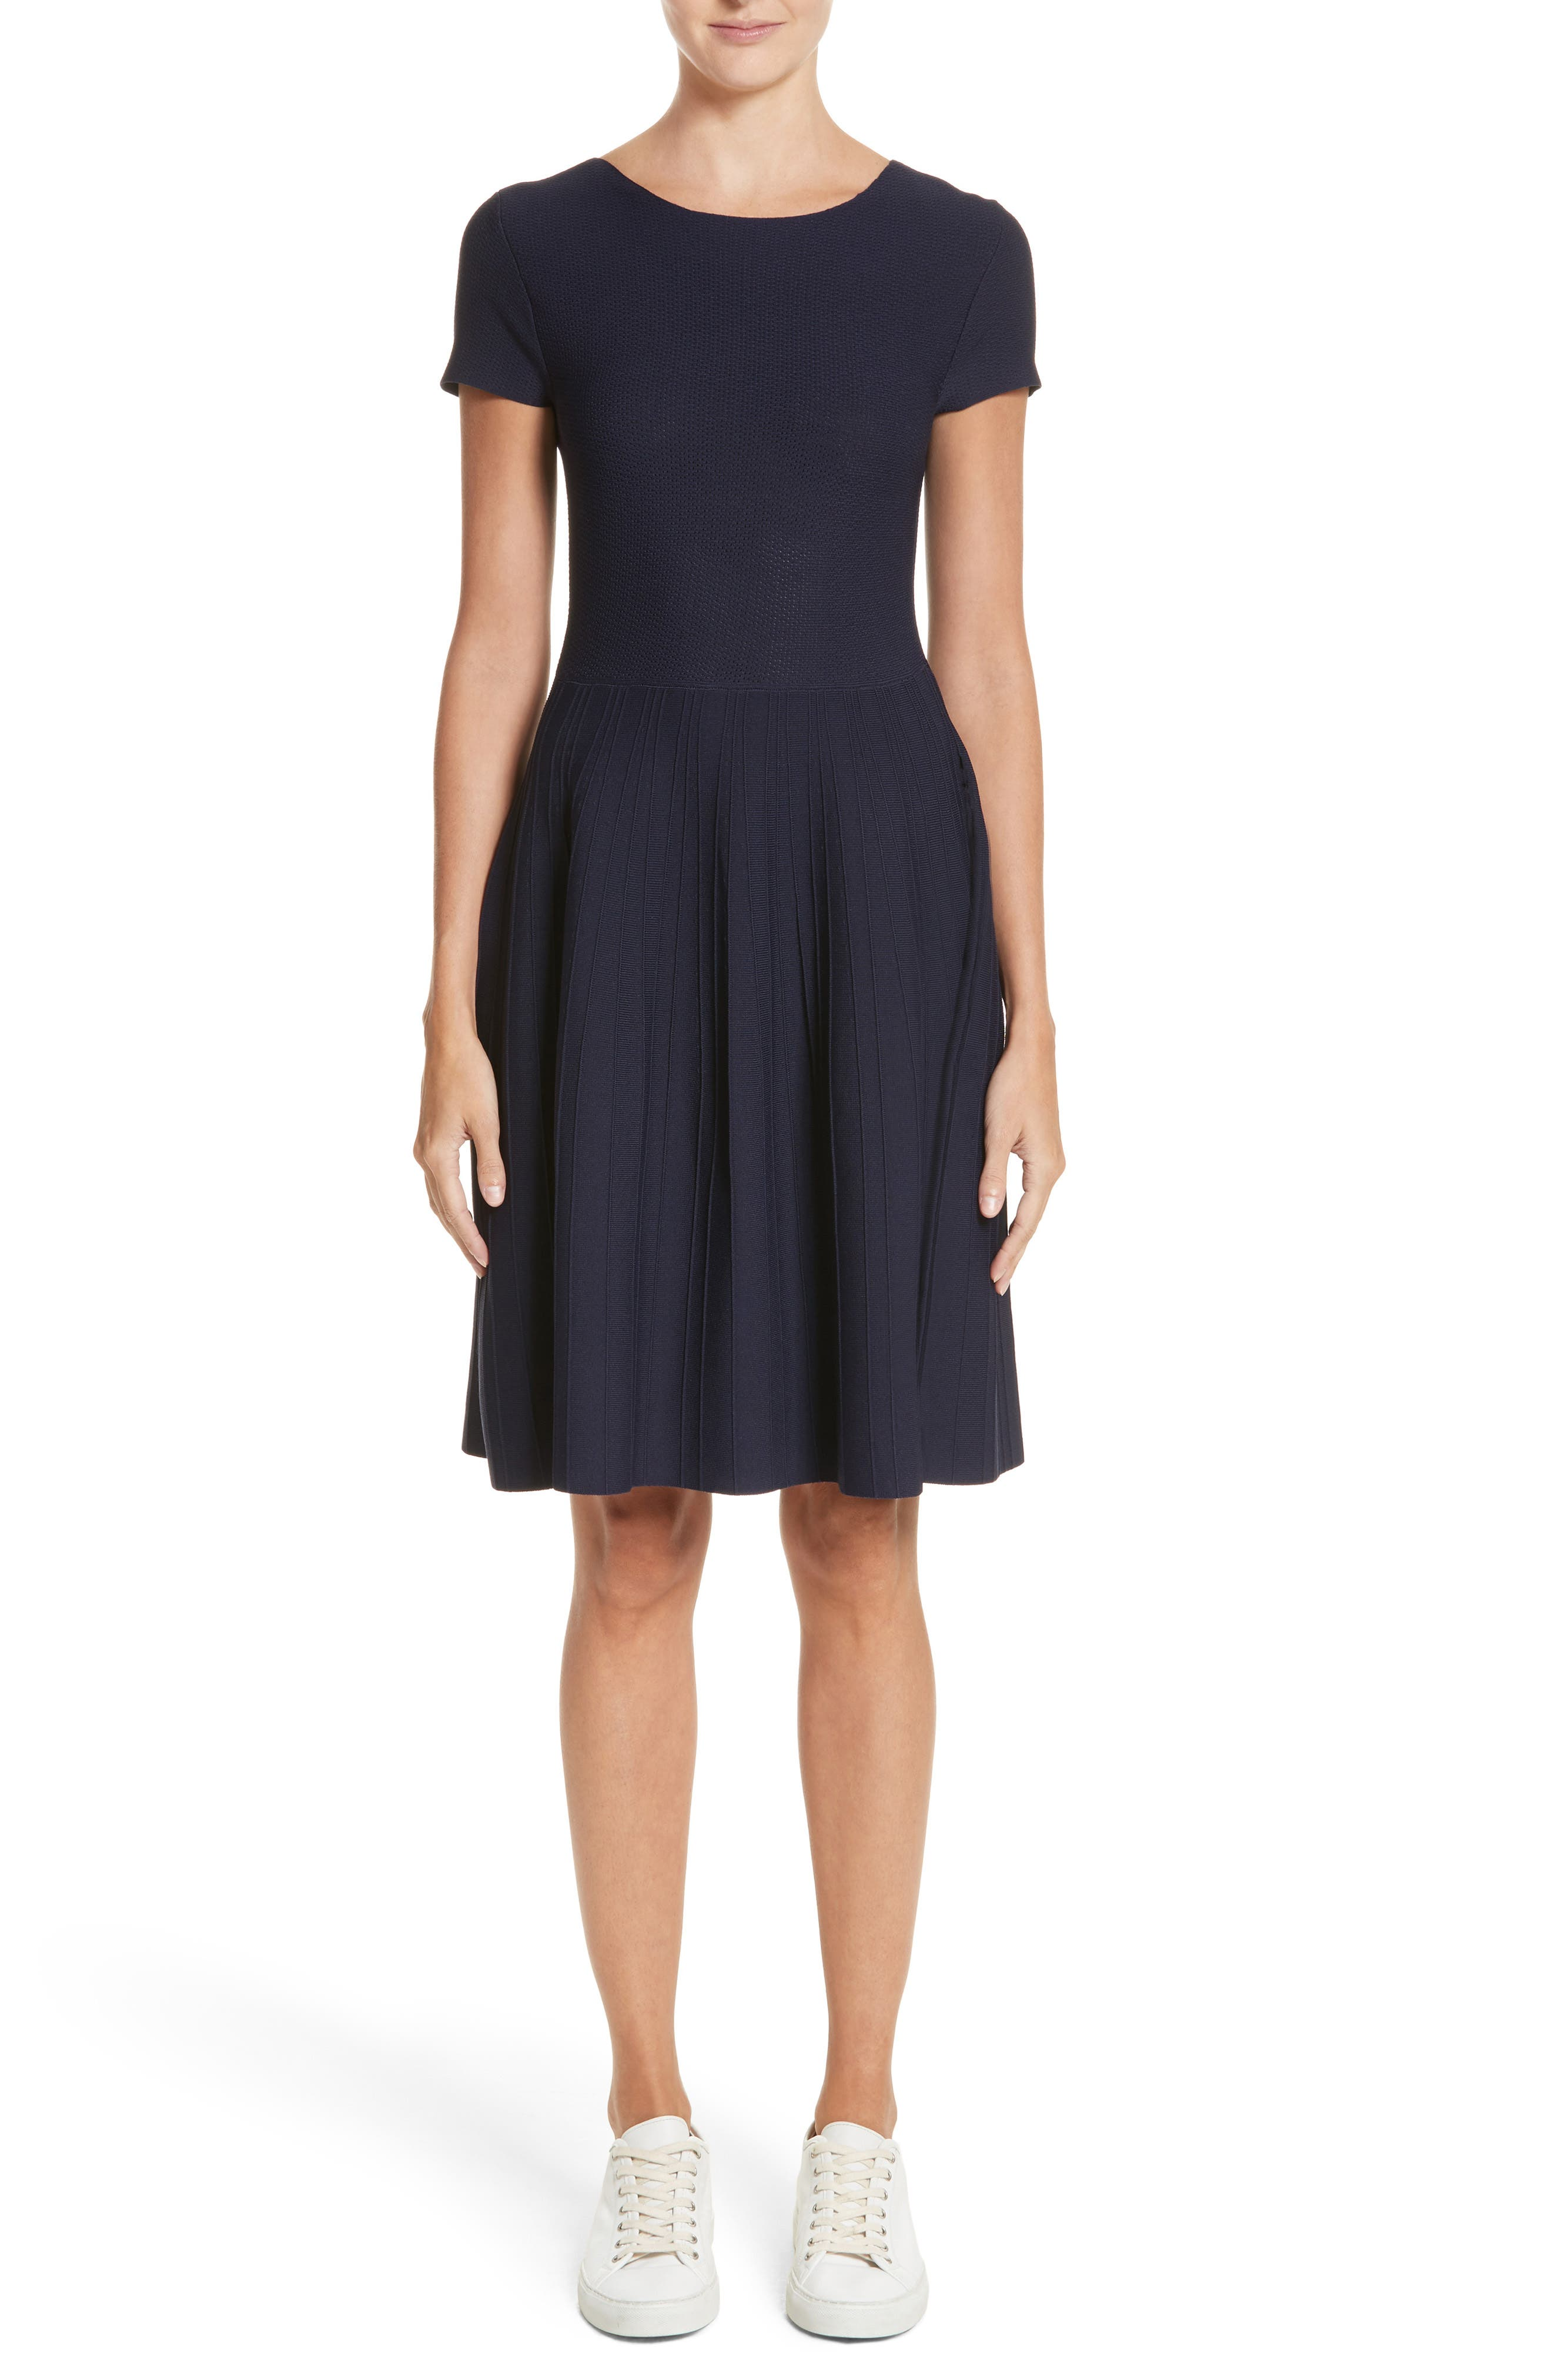 Main Image - Emporio Armani Knit Fit & Flare Dress